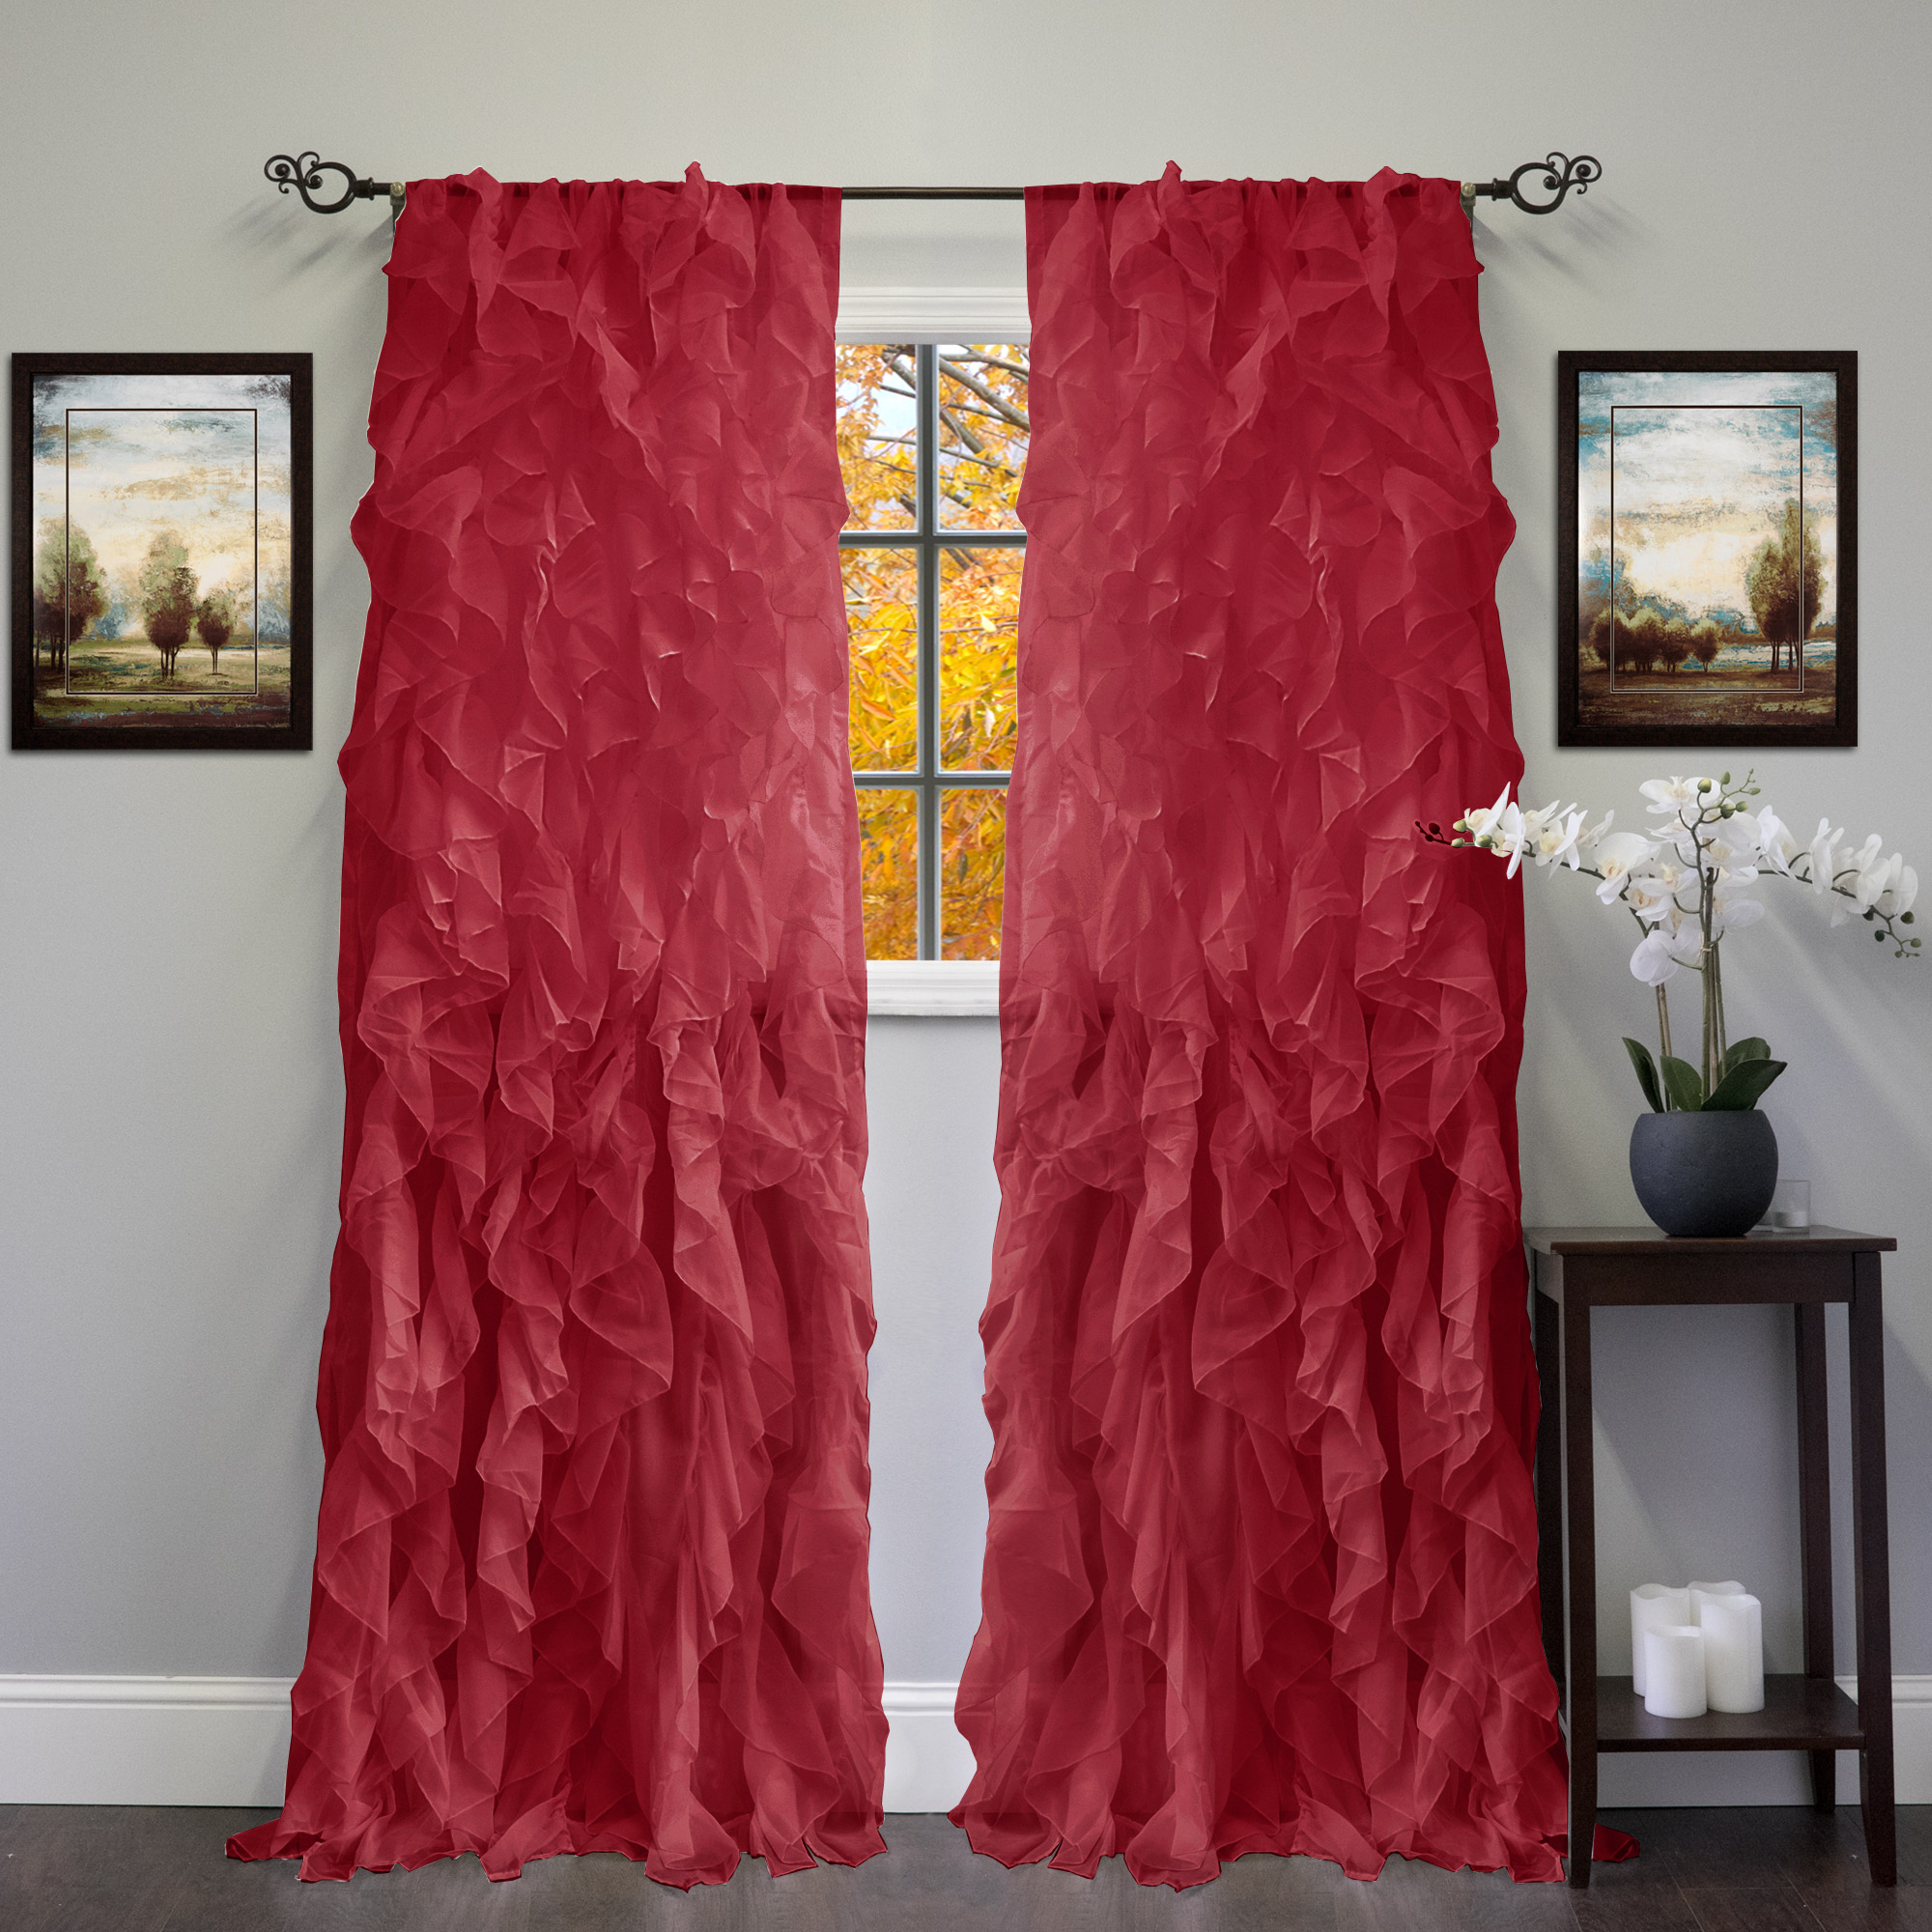 "Sheer Voile Ruffled Tier Window Curtain Panels Pertaining To Current Chic Sheer Voile Vertical Ruffled Tier Window Curtain Single Panel 50"" X 84"" (View 3 of 20)"